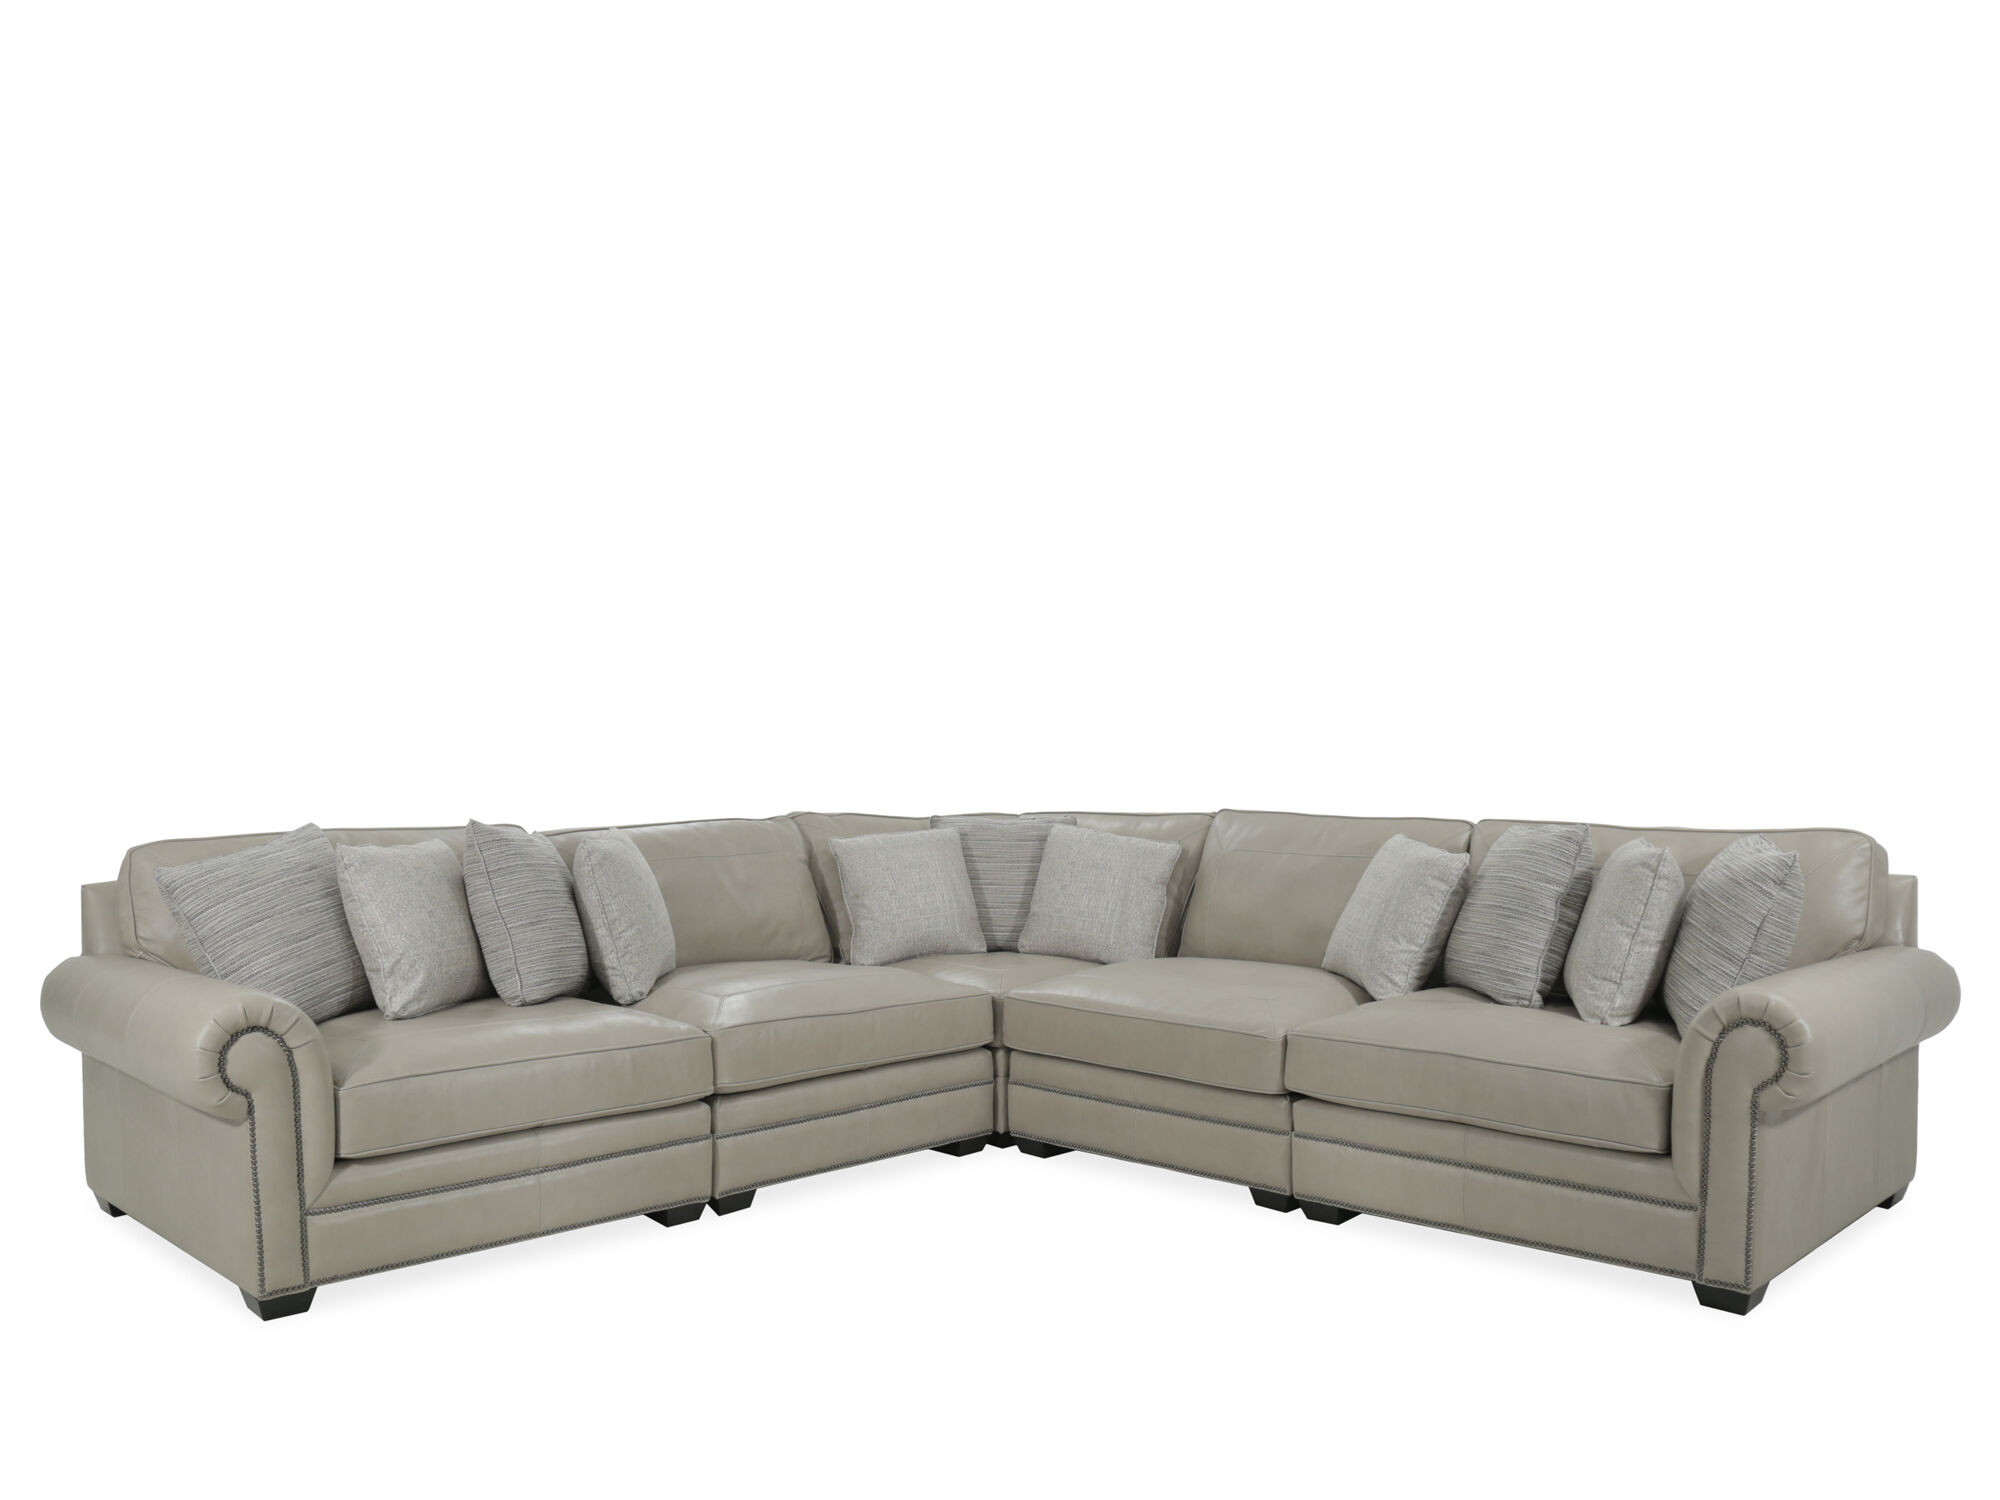 Bernhardt Grandview Leather Beige Five-Piece Sectional  sc 1 st  Mathis Brothers : bernhardt sectional leather - Sectionals, Sofas & Couches